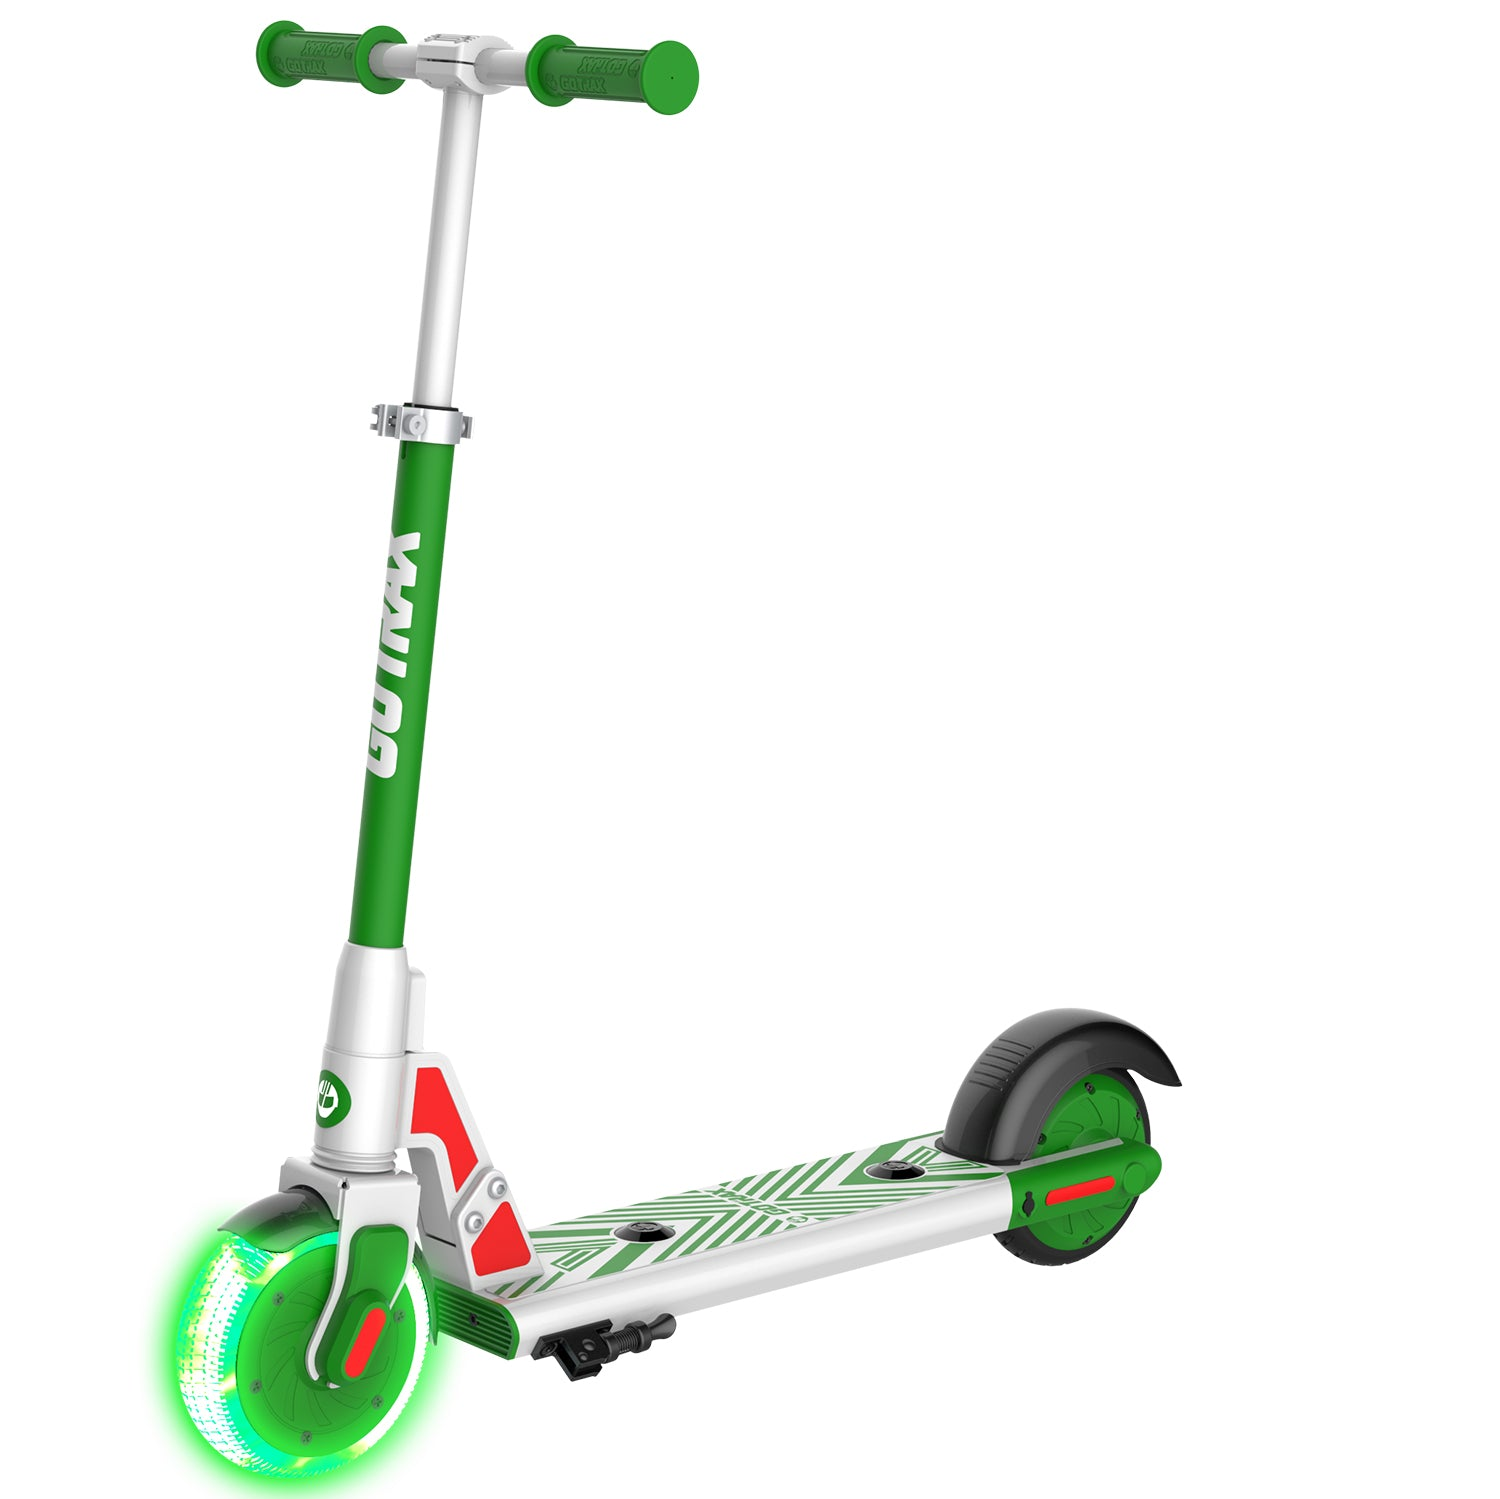 green gks lumios electric scooter for kids main image